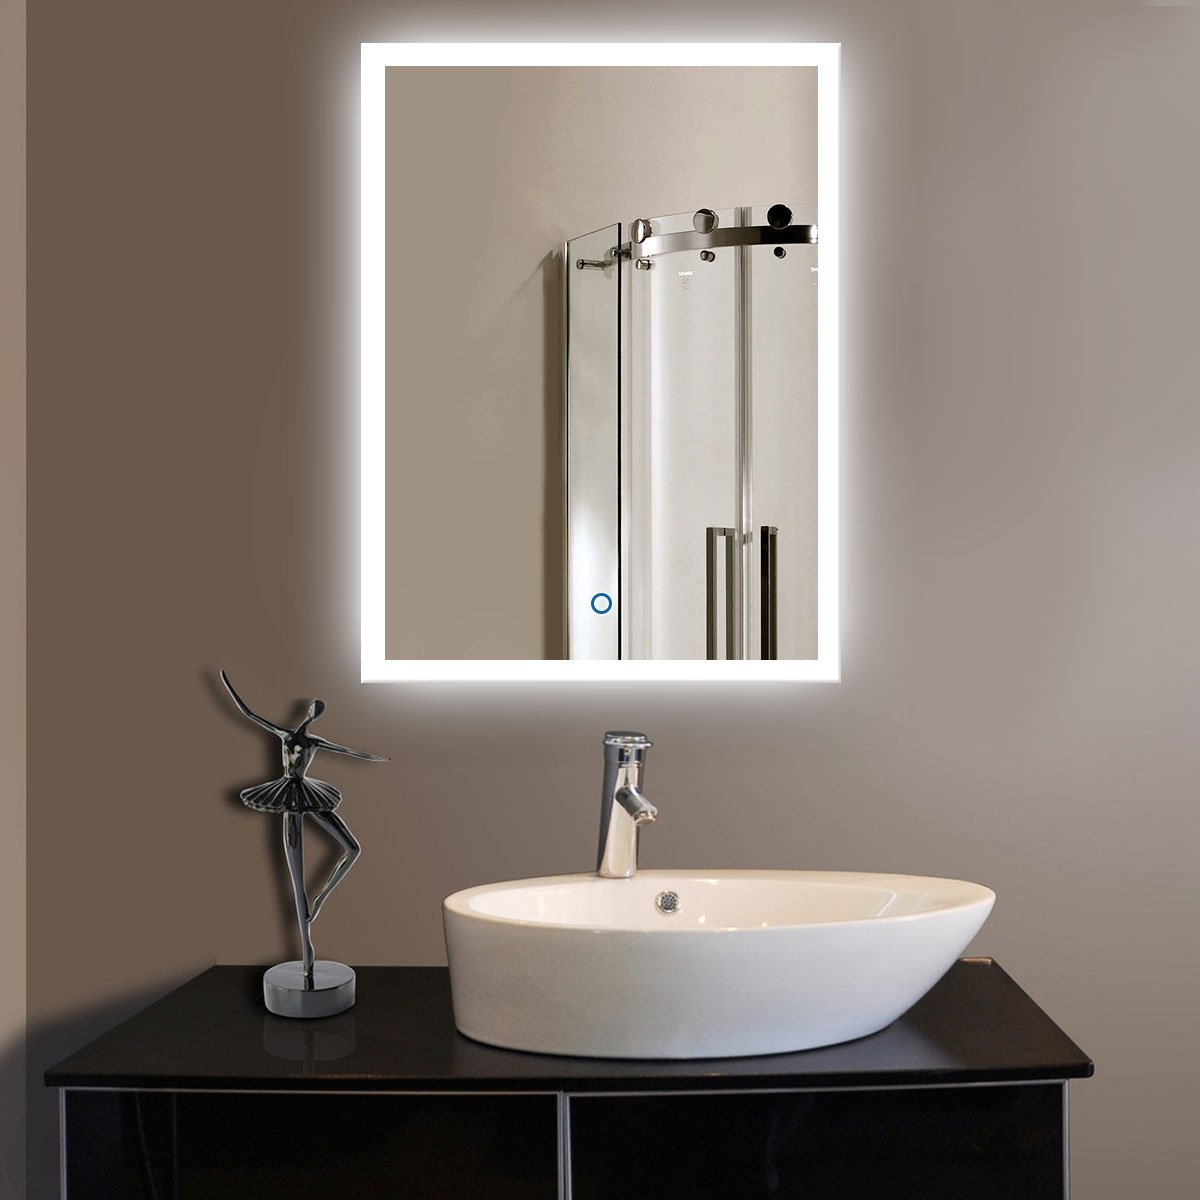 DECORAPORT 24 Inch * 32 Inch Vertical LED Wall Mounted Lighted Vanity Bathroom Silvered Mirror with Touch Button (A-N031)